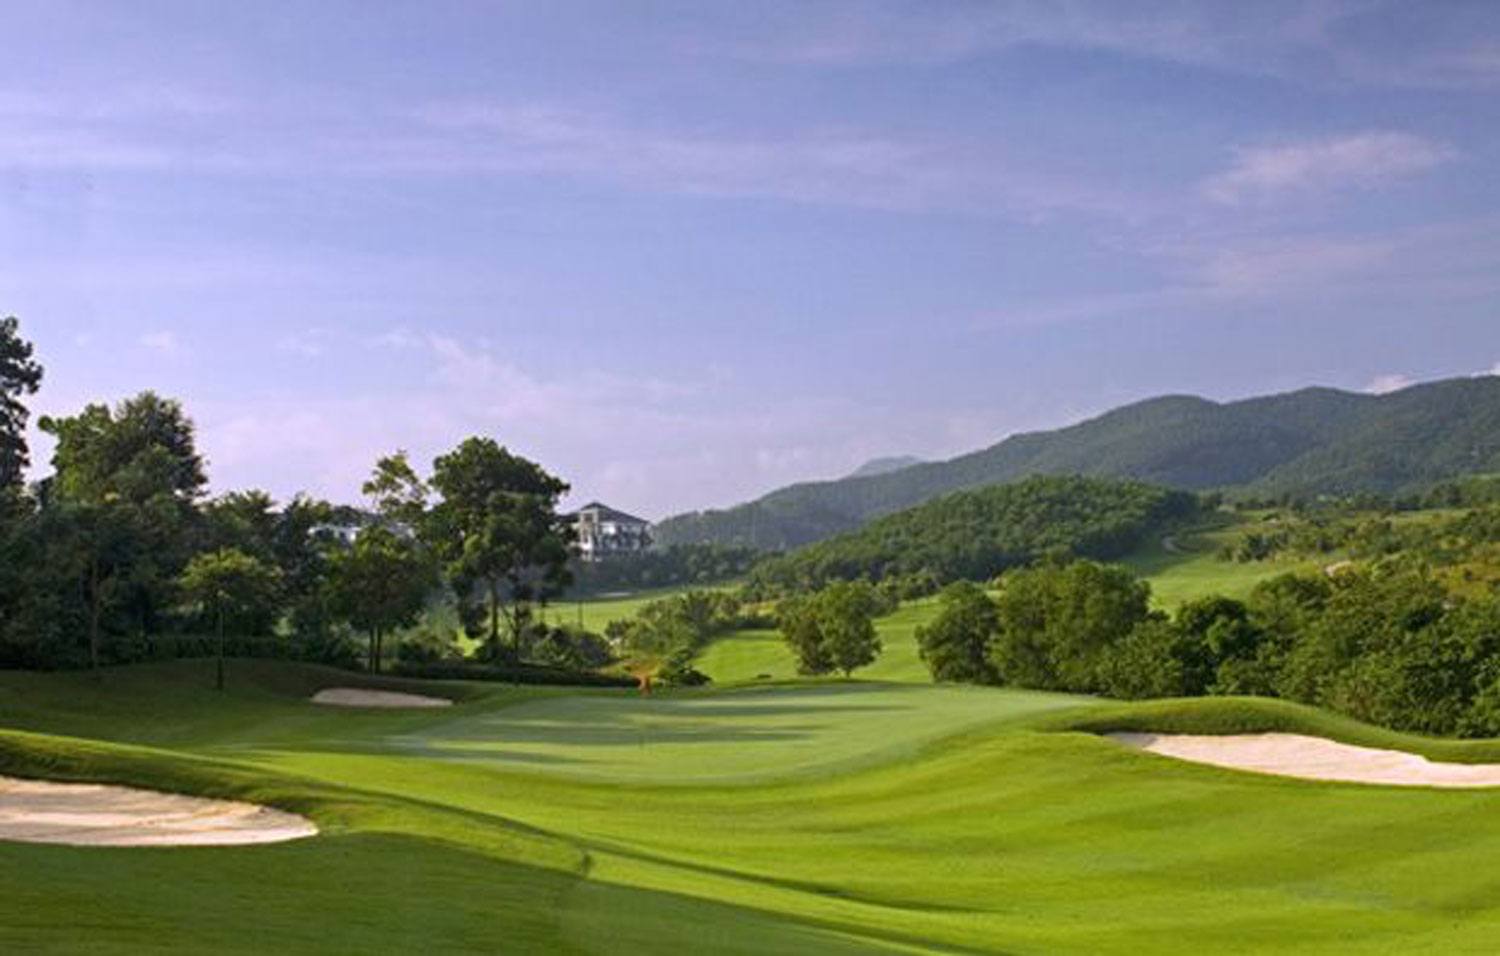 Rose-Poulter-Golf-Course-Mission-Hills-Dongguan